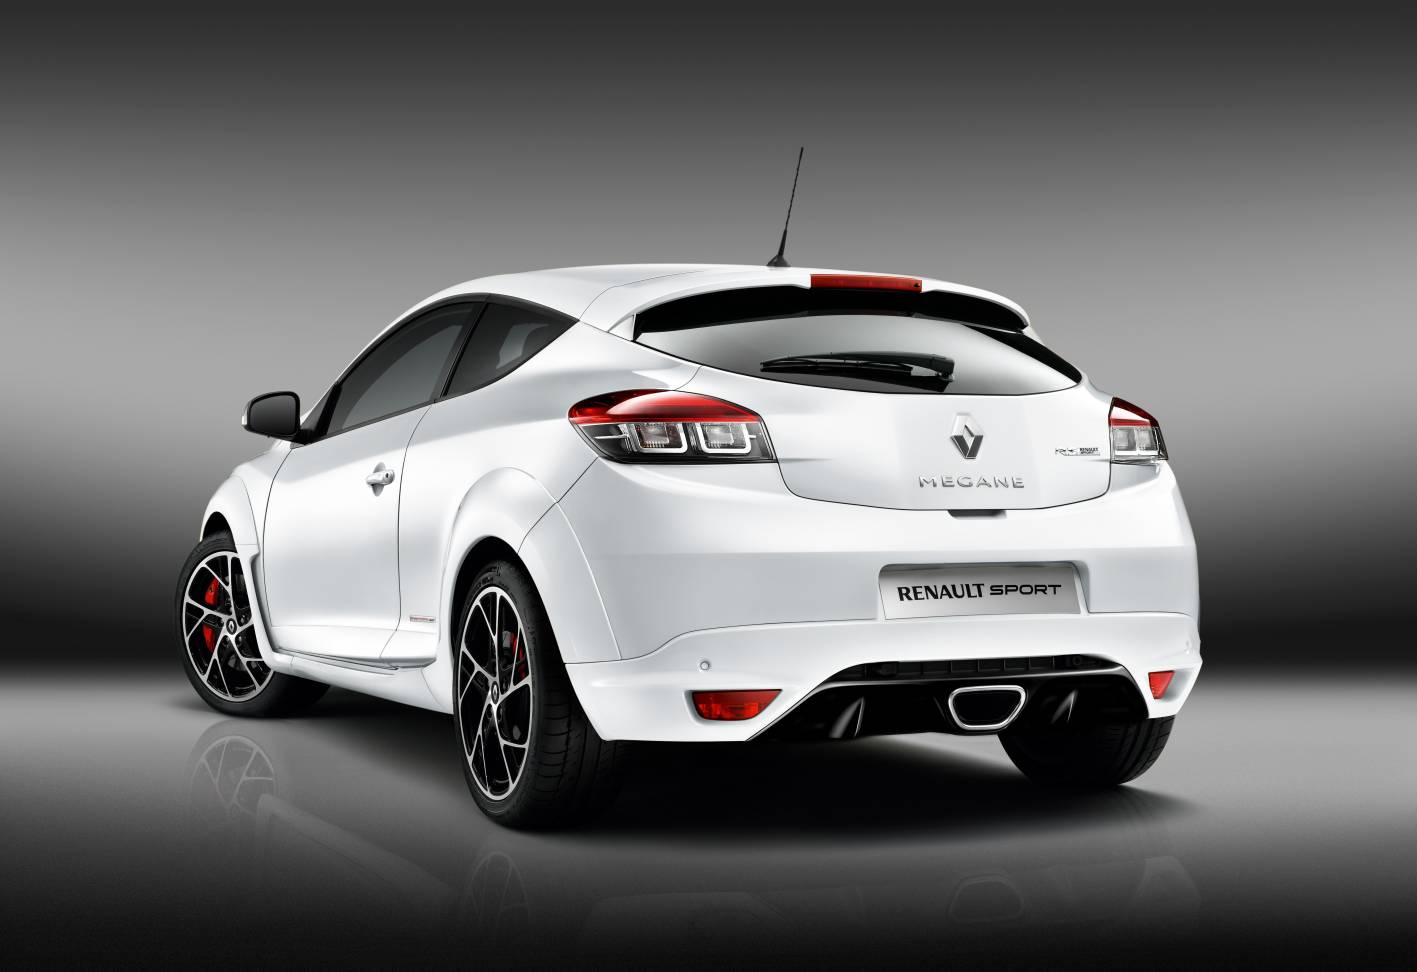 renault megane r s 250 monaco grand prix limited edition announced for australia performancedrive. Black Bedroom Furniture Sets. Home Design Ideas